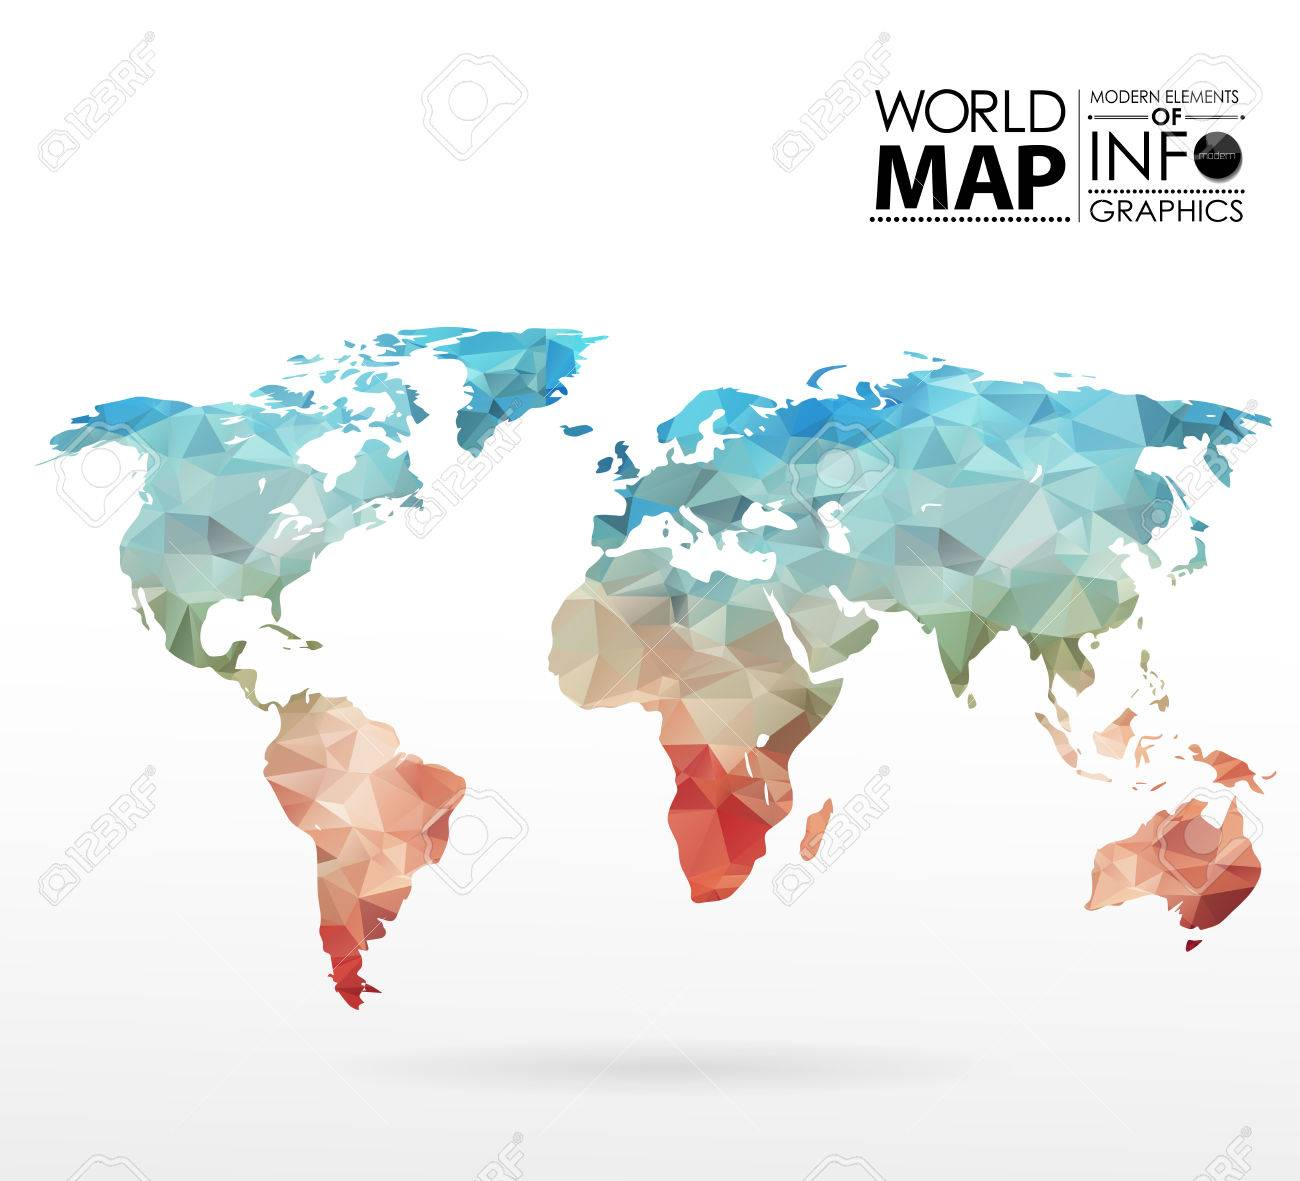 World map background in polygonal style modern elements of info world map background in polygonal style modern elements of info graphics world map stock gumiabroncs Images